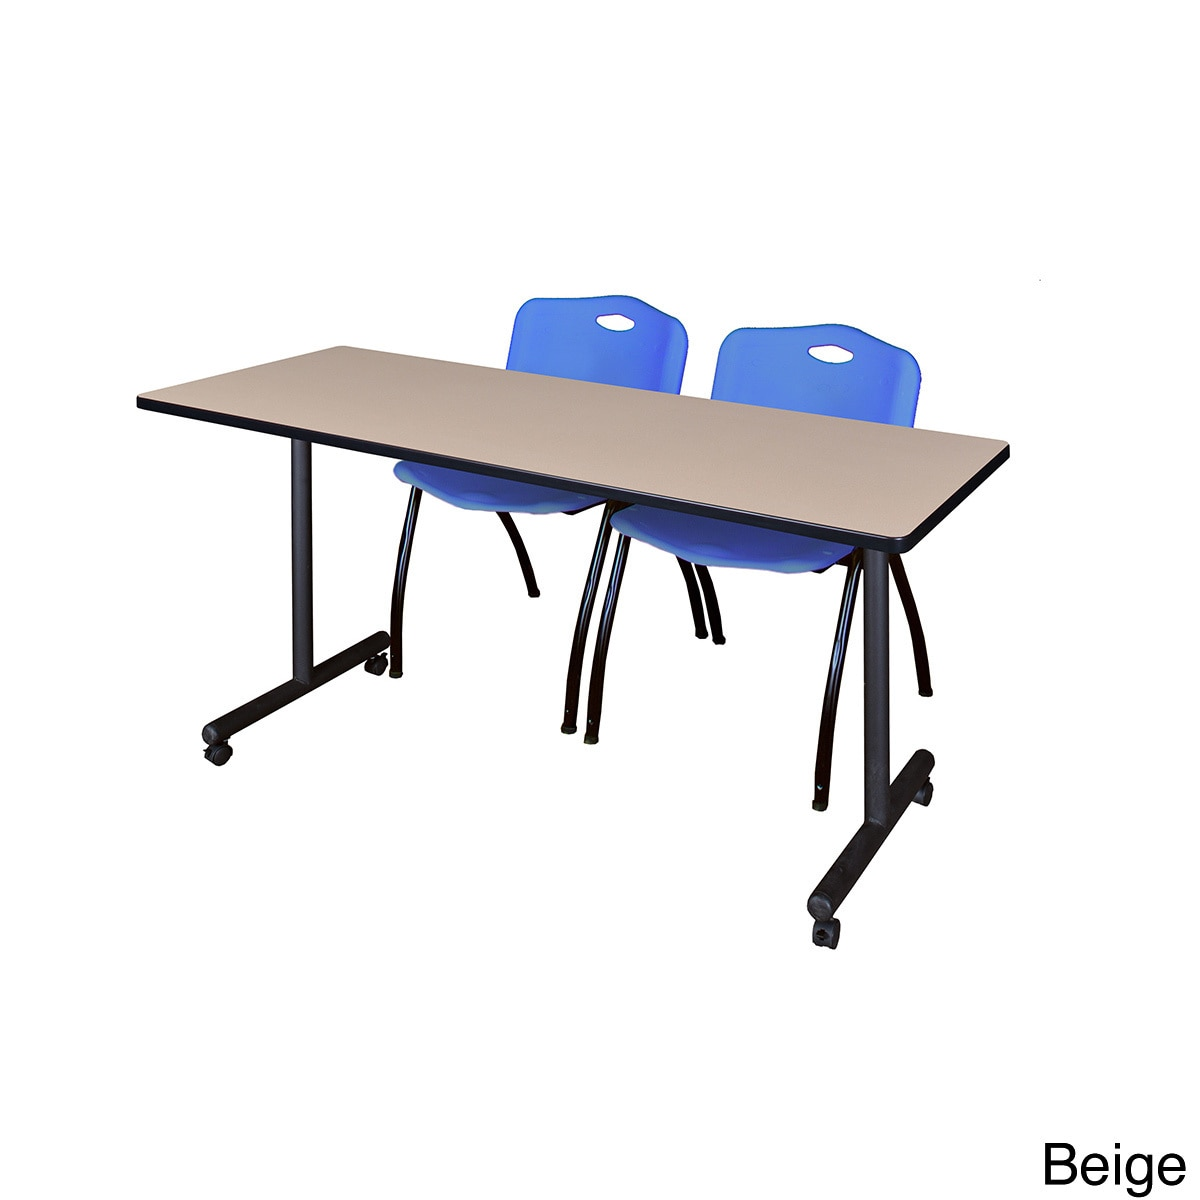 Shop Kobe Blue Black Wood Laminate Metal Mobile Training Table with Two  Stack Chairs - Free Shipping Today - Overstock - 12615230 16f7cada076